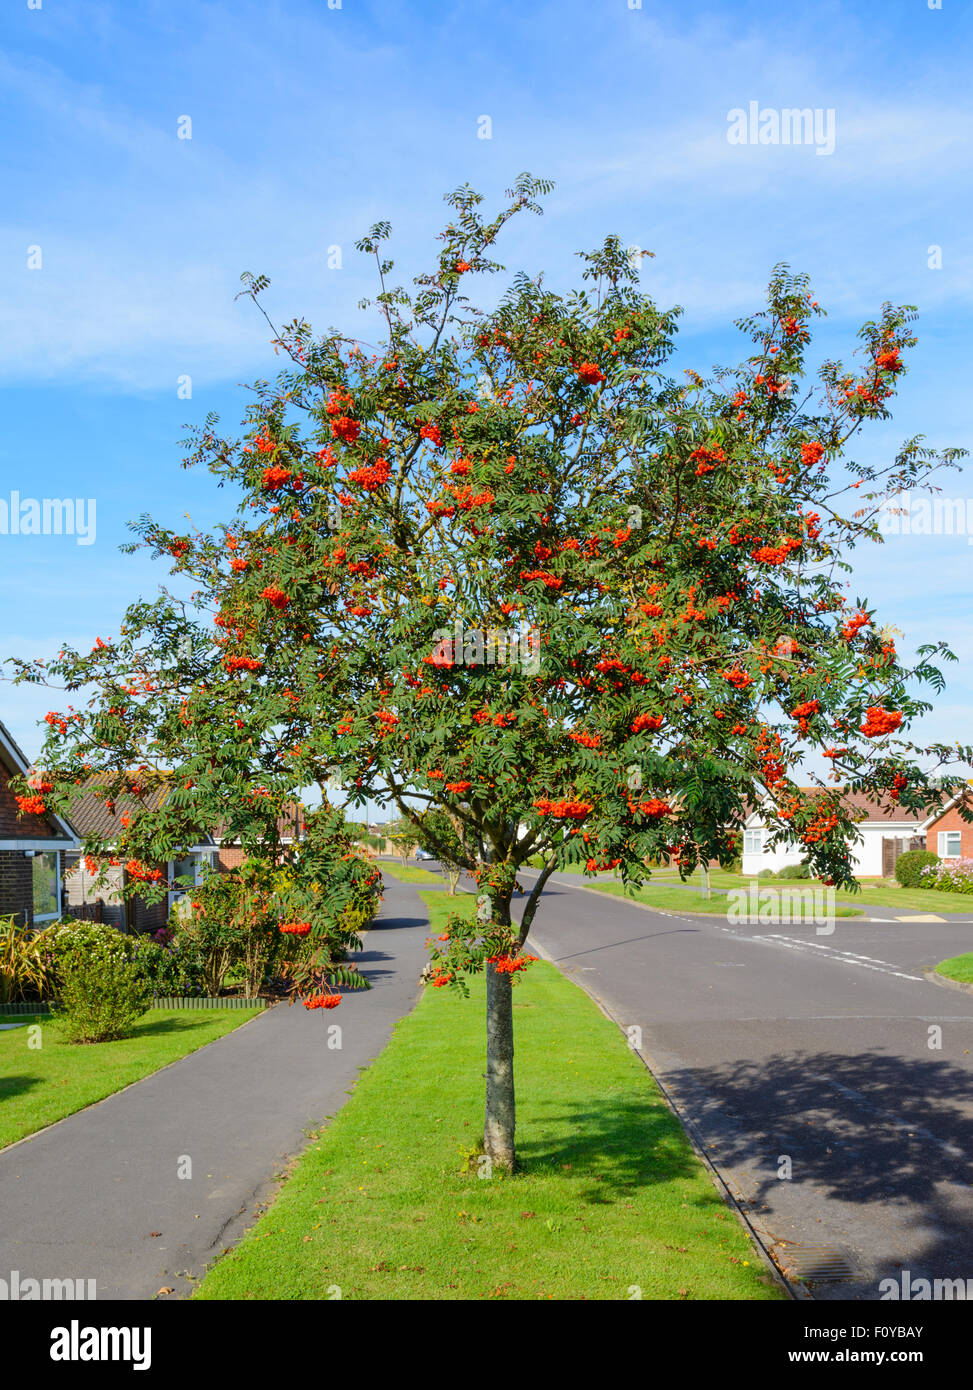 Sorbus aucuparia (Rowan tree, Mountain-Ash tree) by the side of the road in a residential area in England, UK. - Stock Image